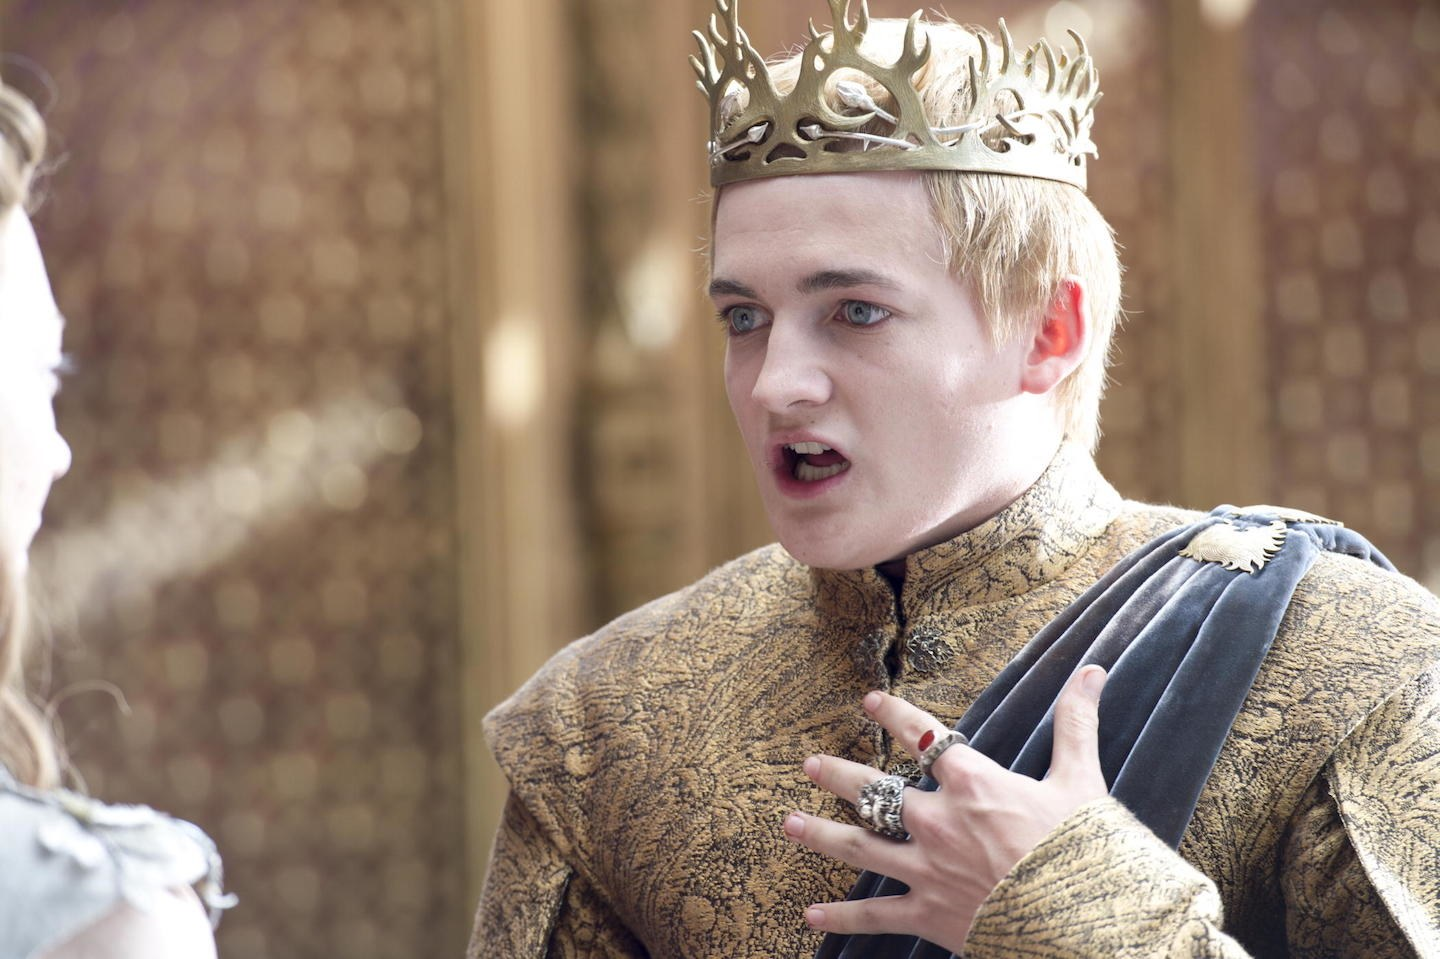 'Game of Thrones' episode mistakenly leaked in Europe and Scandinavia